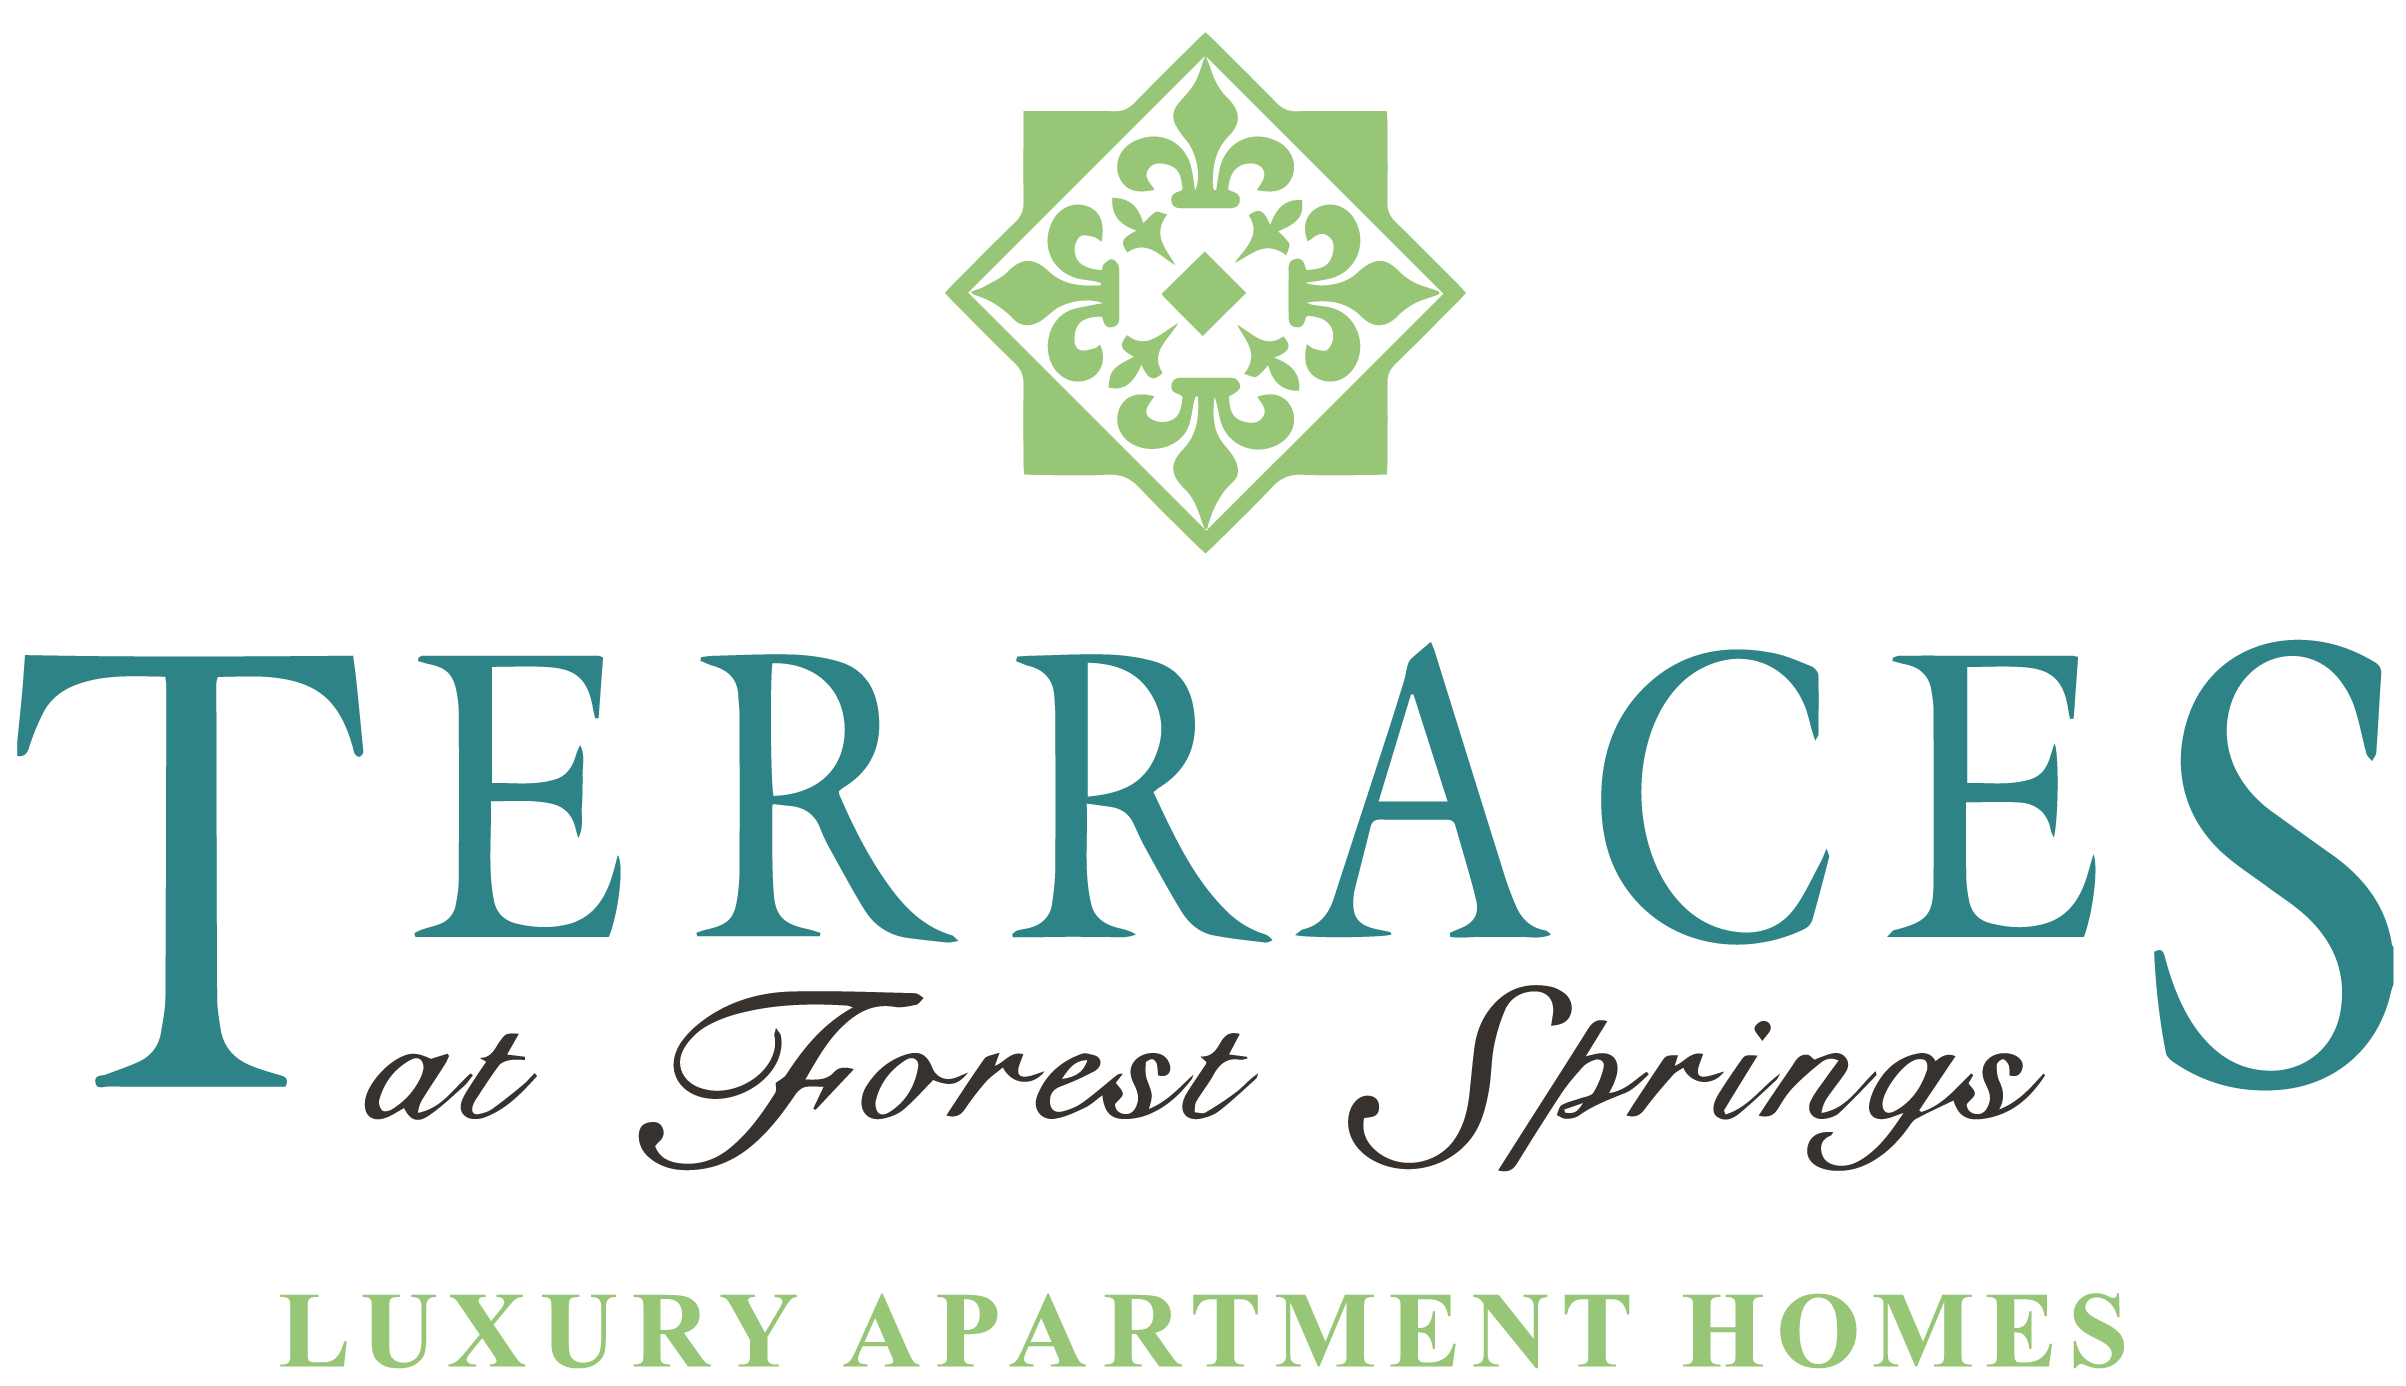 Terraces at Forest Springs Logo